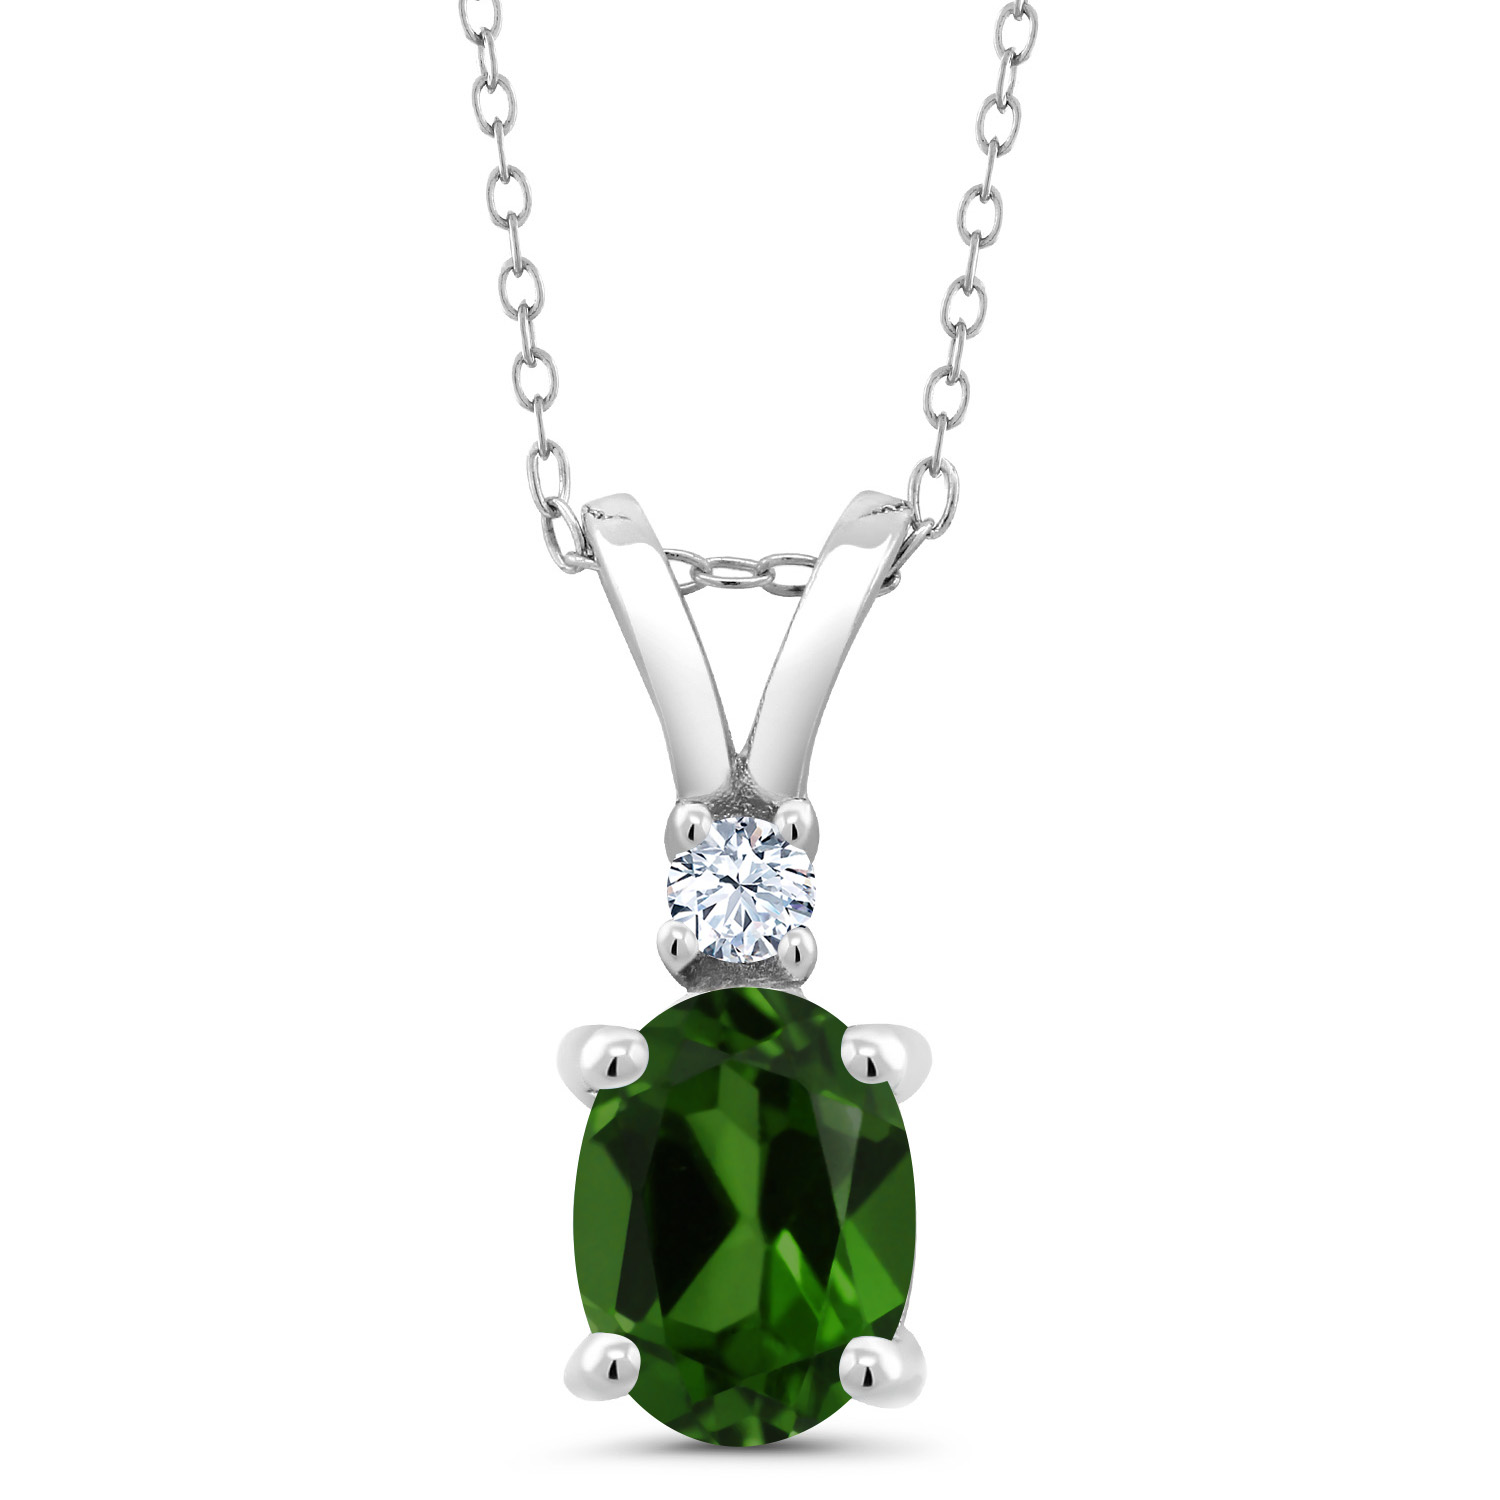 Gem Stone King 1.44 Ct Oval Green Chrome Diopside 925 Sterling Silver Pendant with Gift